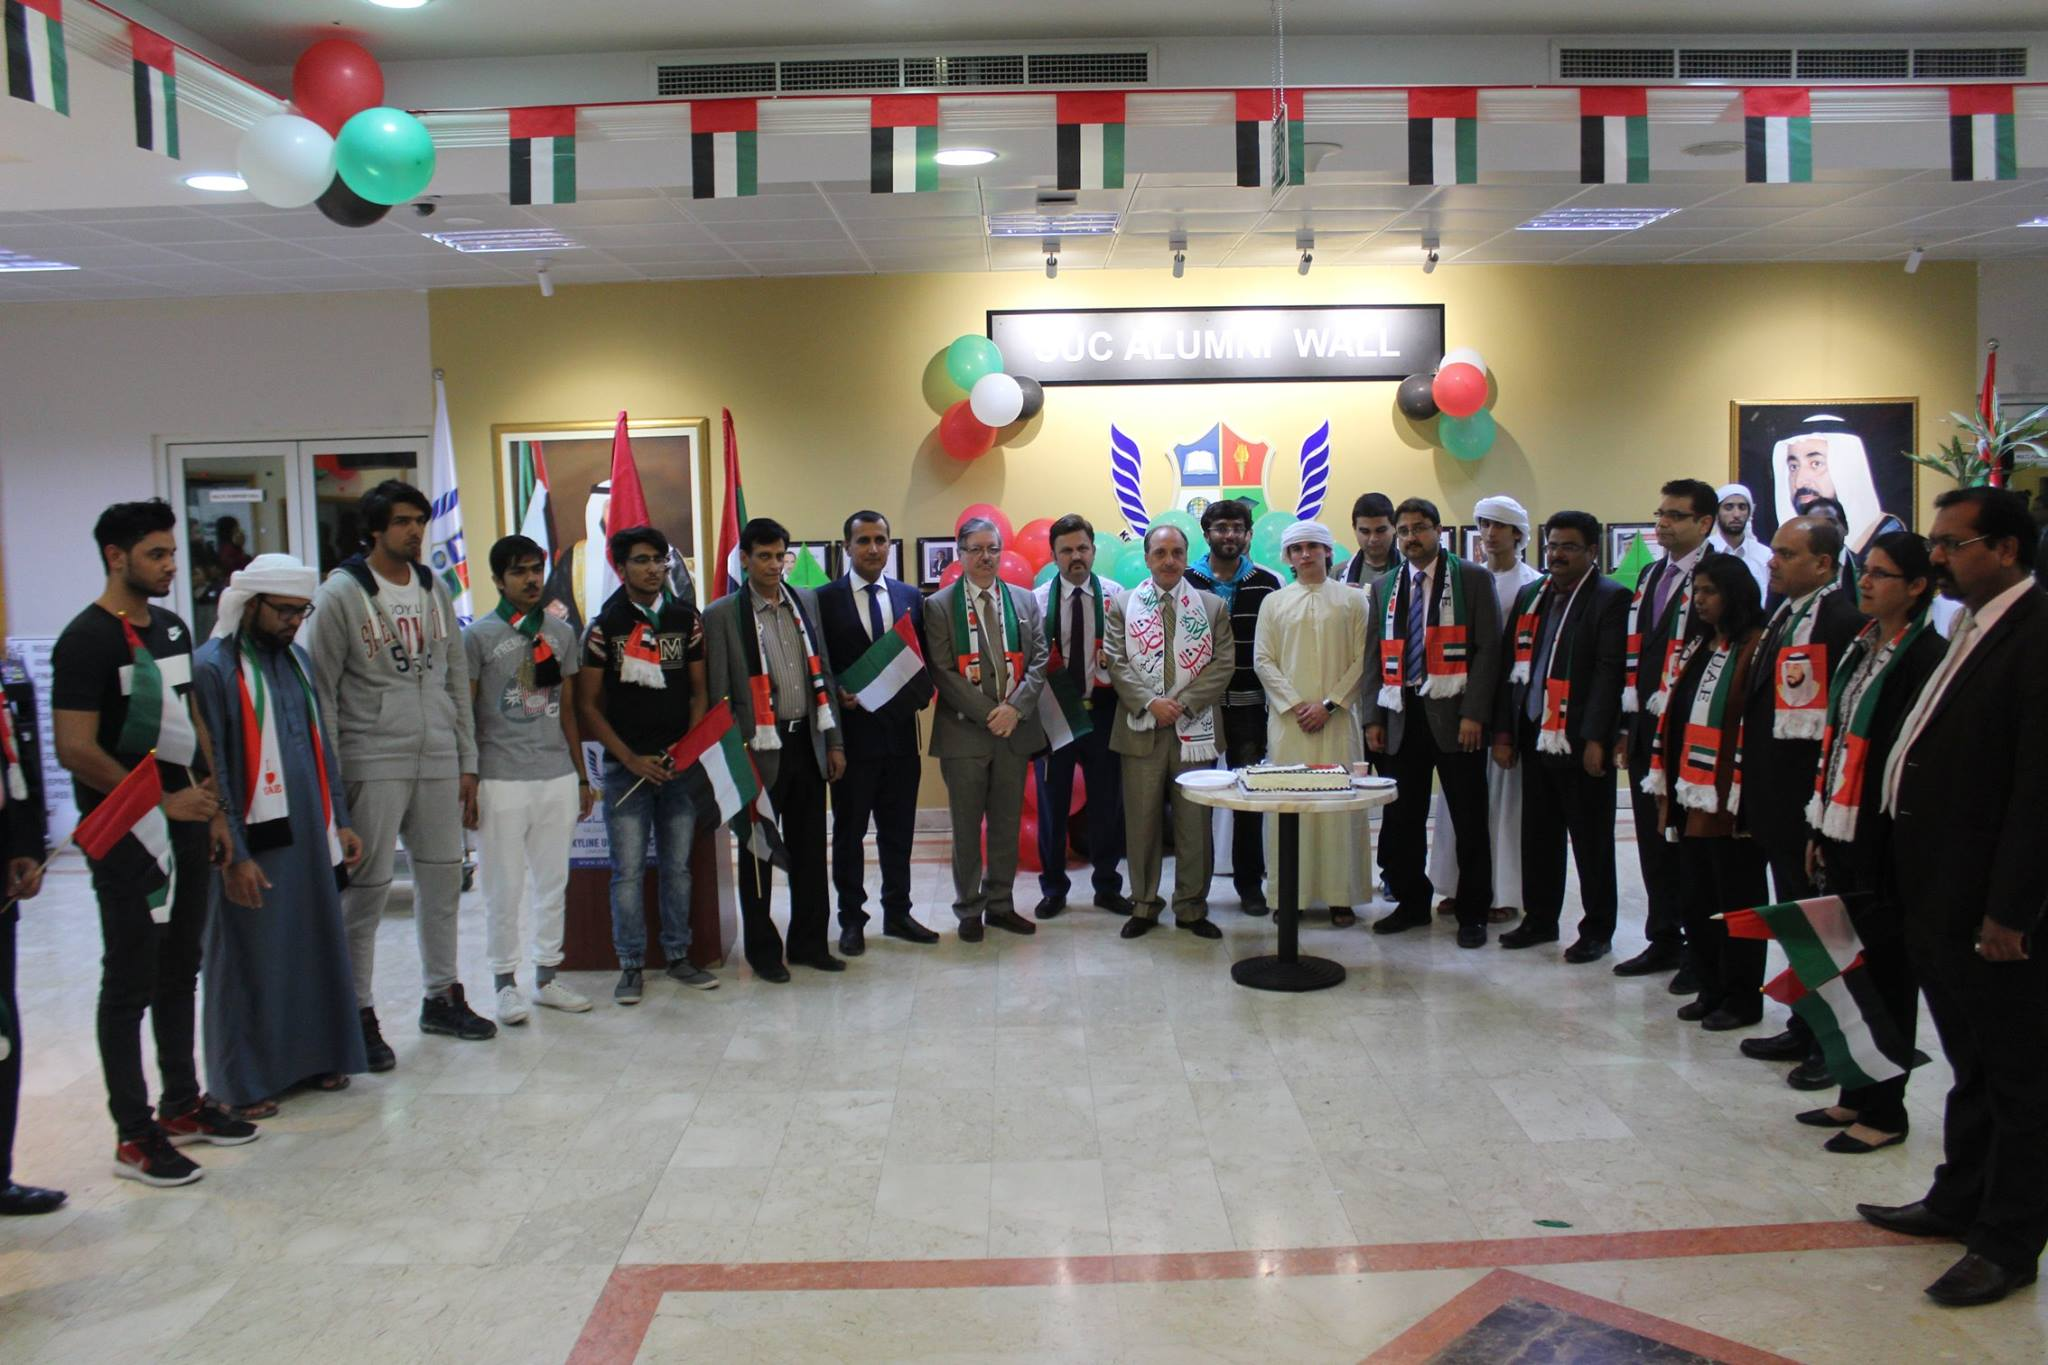 SUC celebrated the 45th UAE National Day